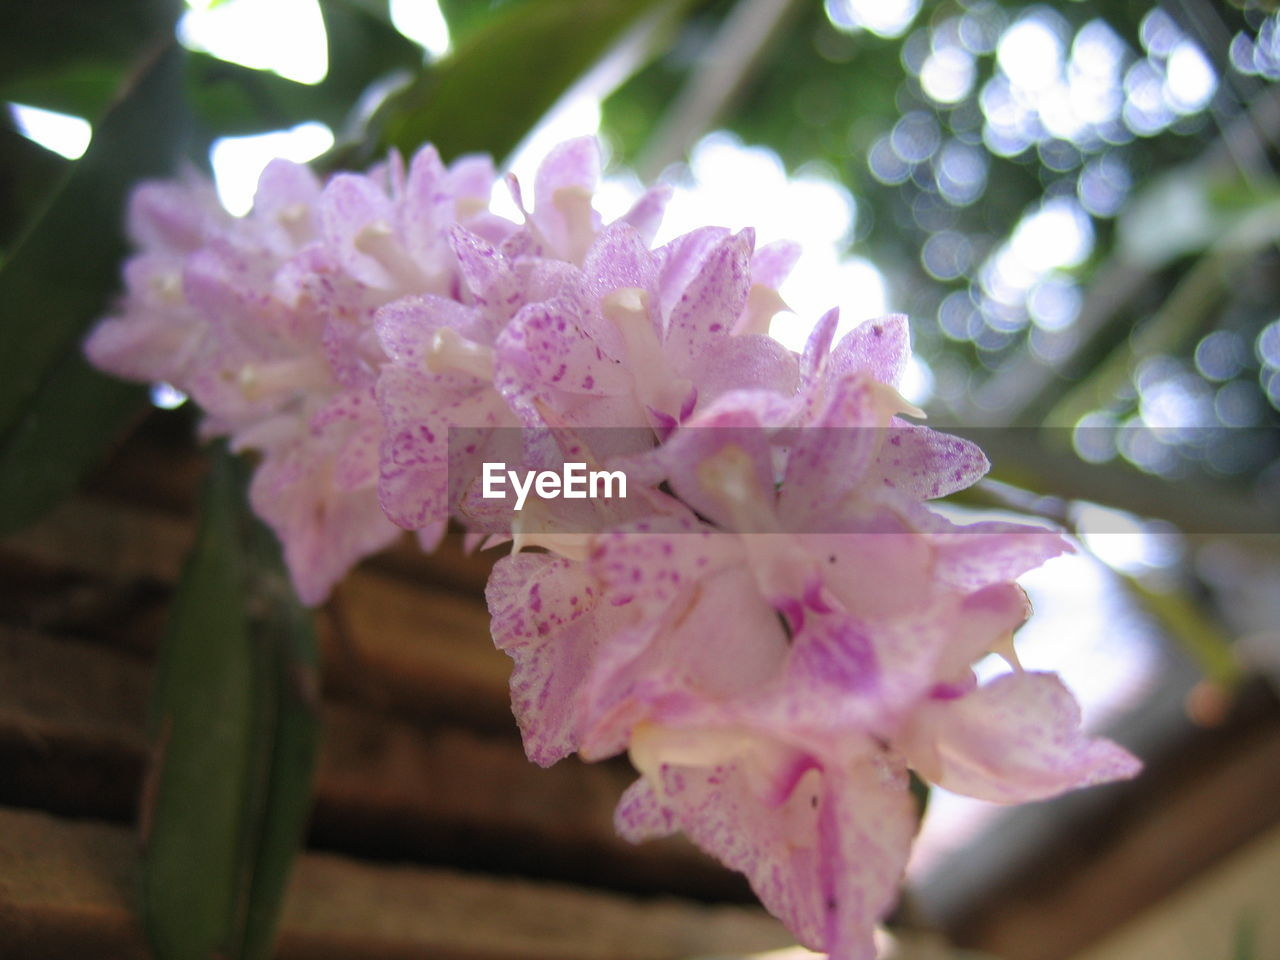 flower, growth, beauty in nature, fragility, nature, freshness, pink color, petal, no people, outdoors, springtime, close-up, day, plant, flower head, blooming, tree